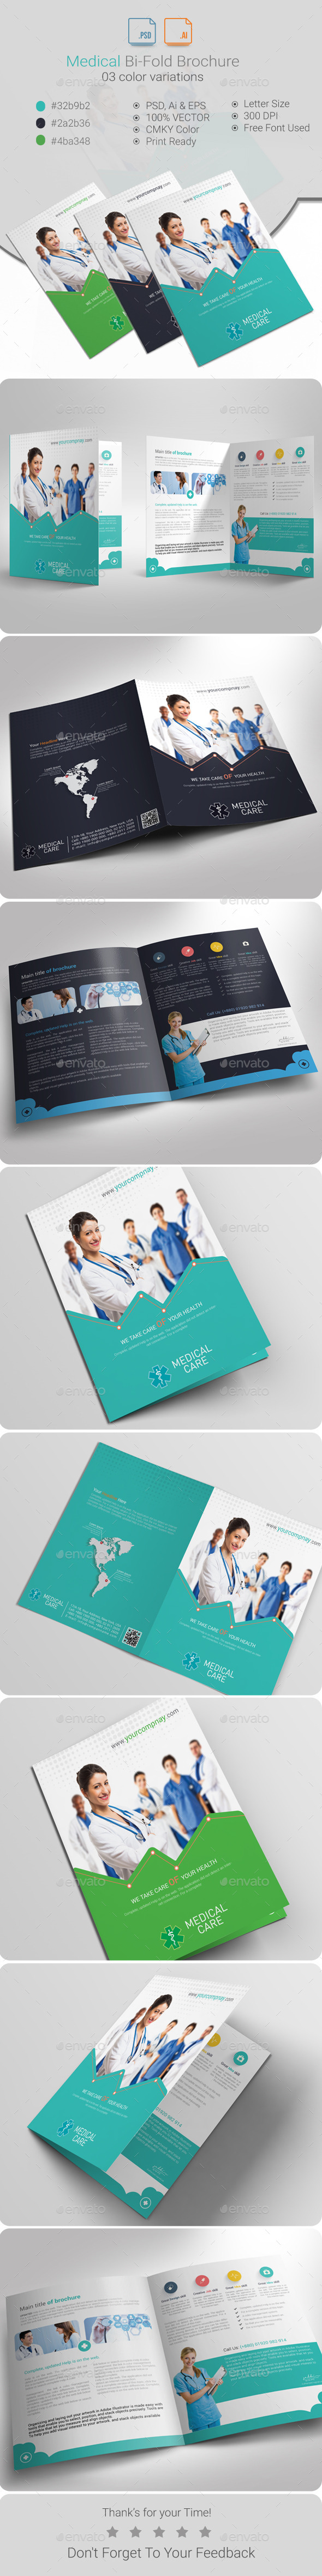 GraphicRiver Medical Bi-Fold Brochure 10317104